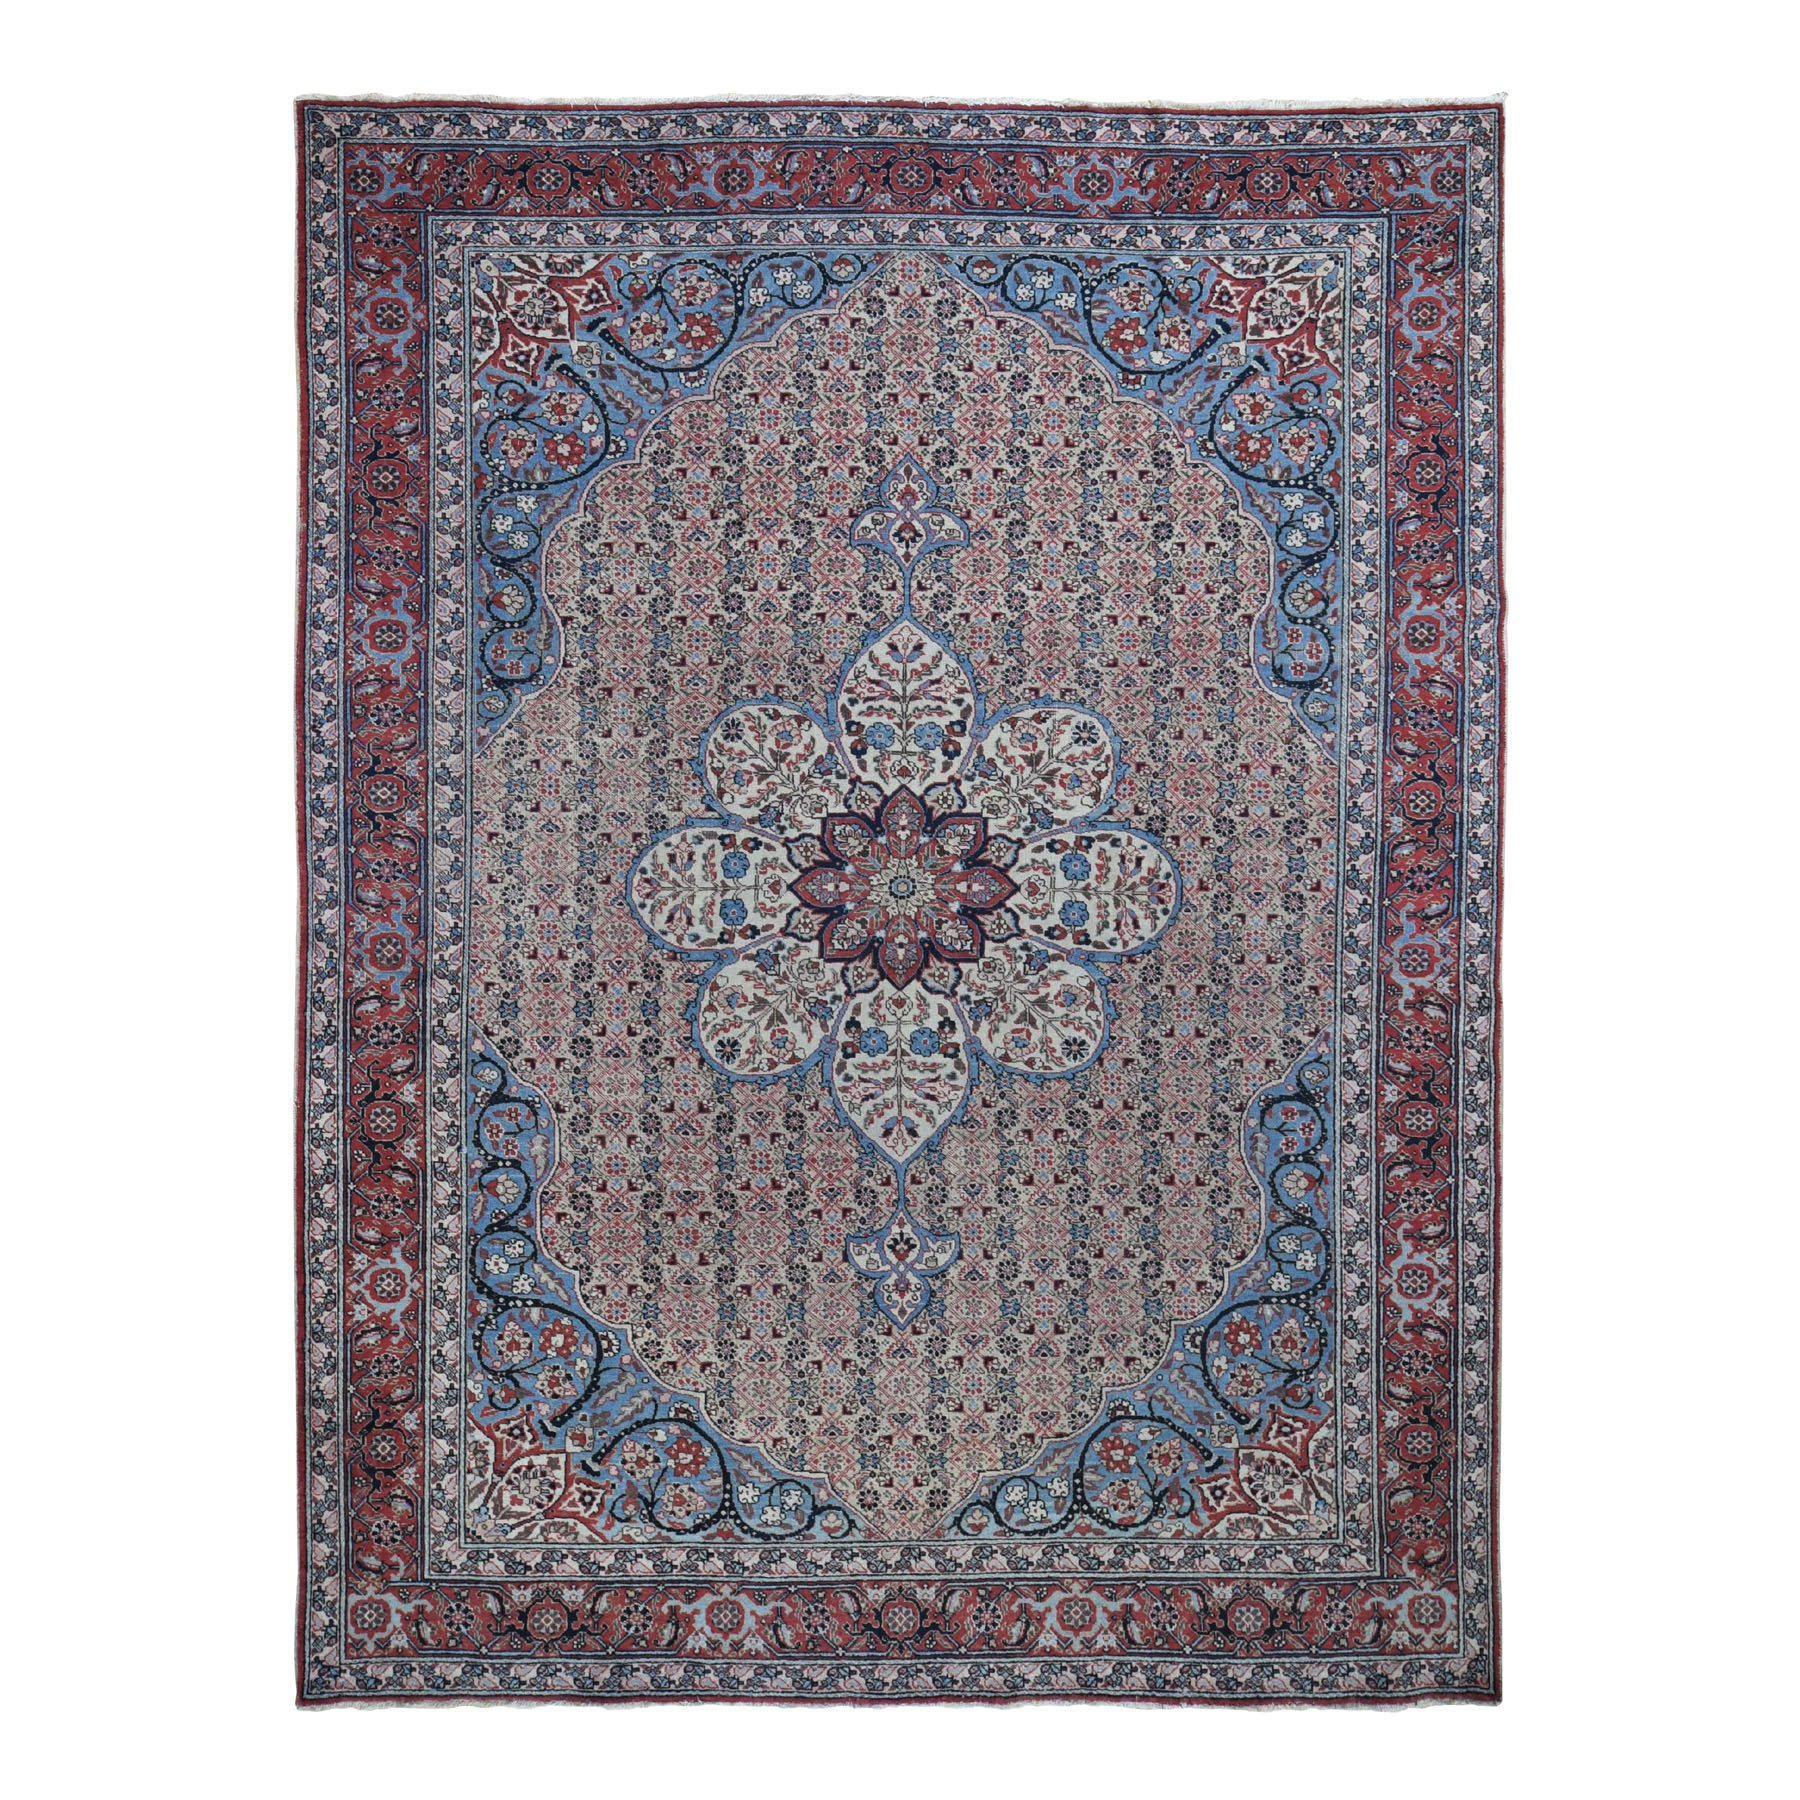 8'X11' Antique Persian Tabriz Flower Design Even Wear Good Condition Hand Knotted Oriental Rug moad8d7c